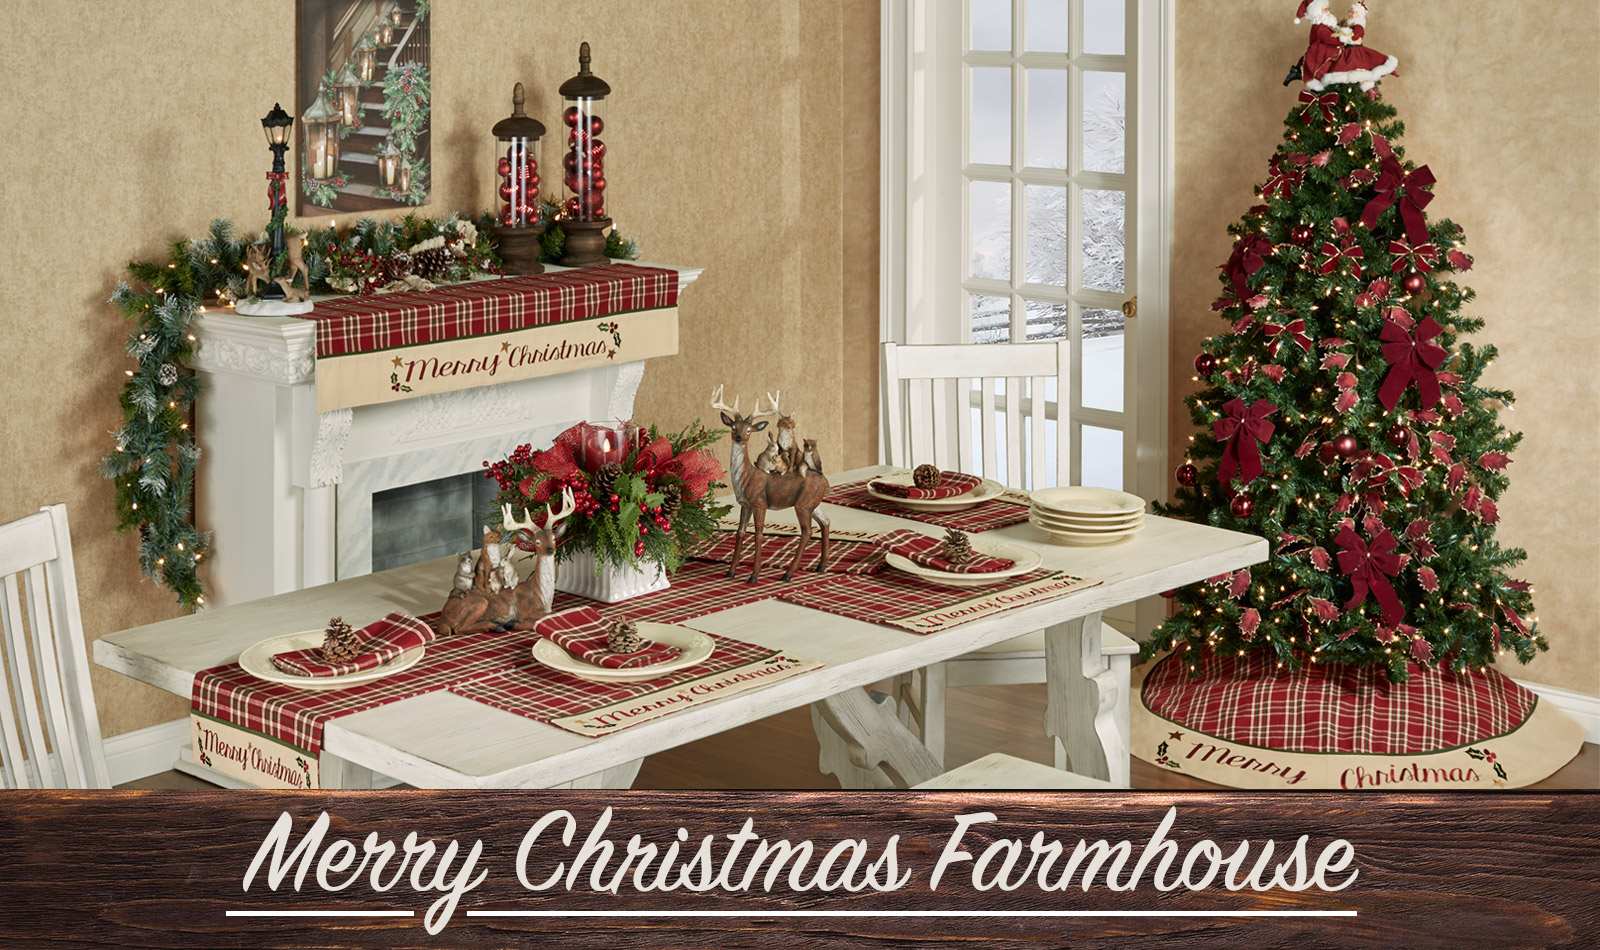 Get The Look - Merry Chrsitmas Farmhouse Dining Room